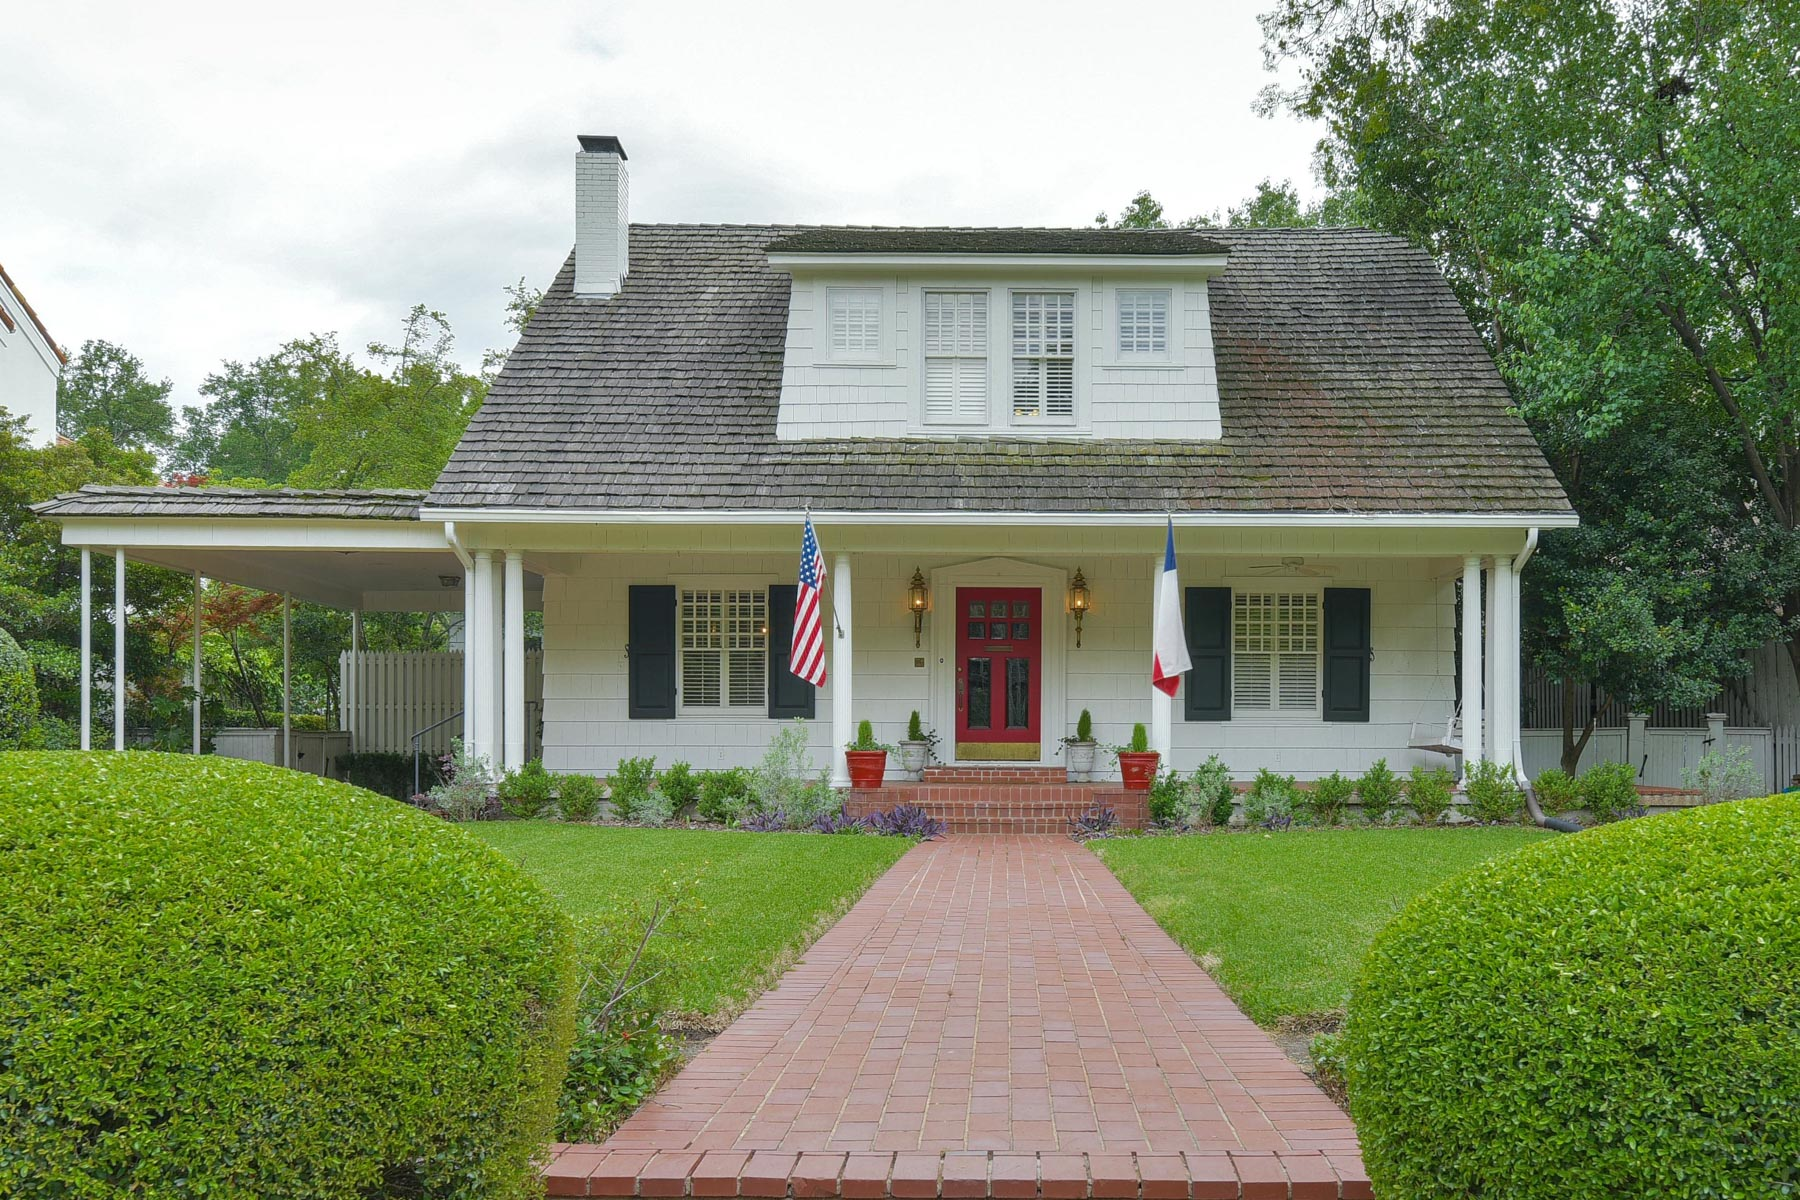 Casa Unifamiliar por un Venta en Historical Highland Park Traditional 3917 Euclid Ave Dallas, Texas, 75205 Estados Unidos